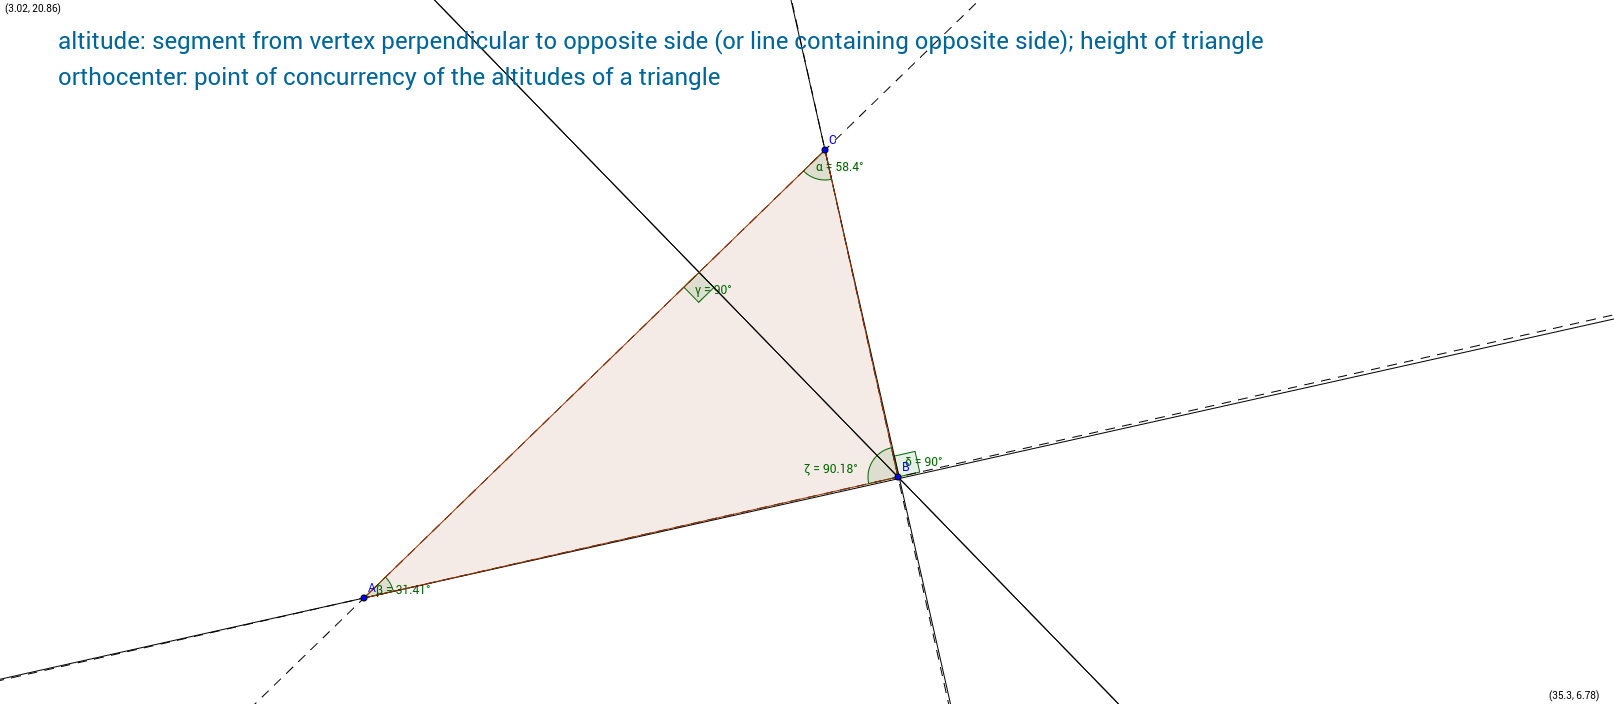 Altitudes and orthocenter